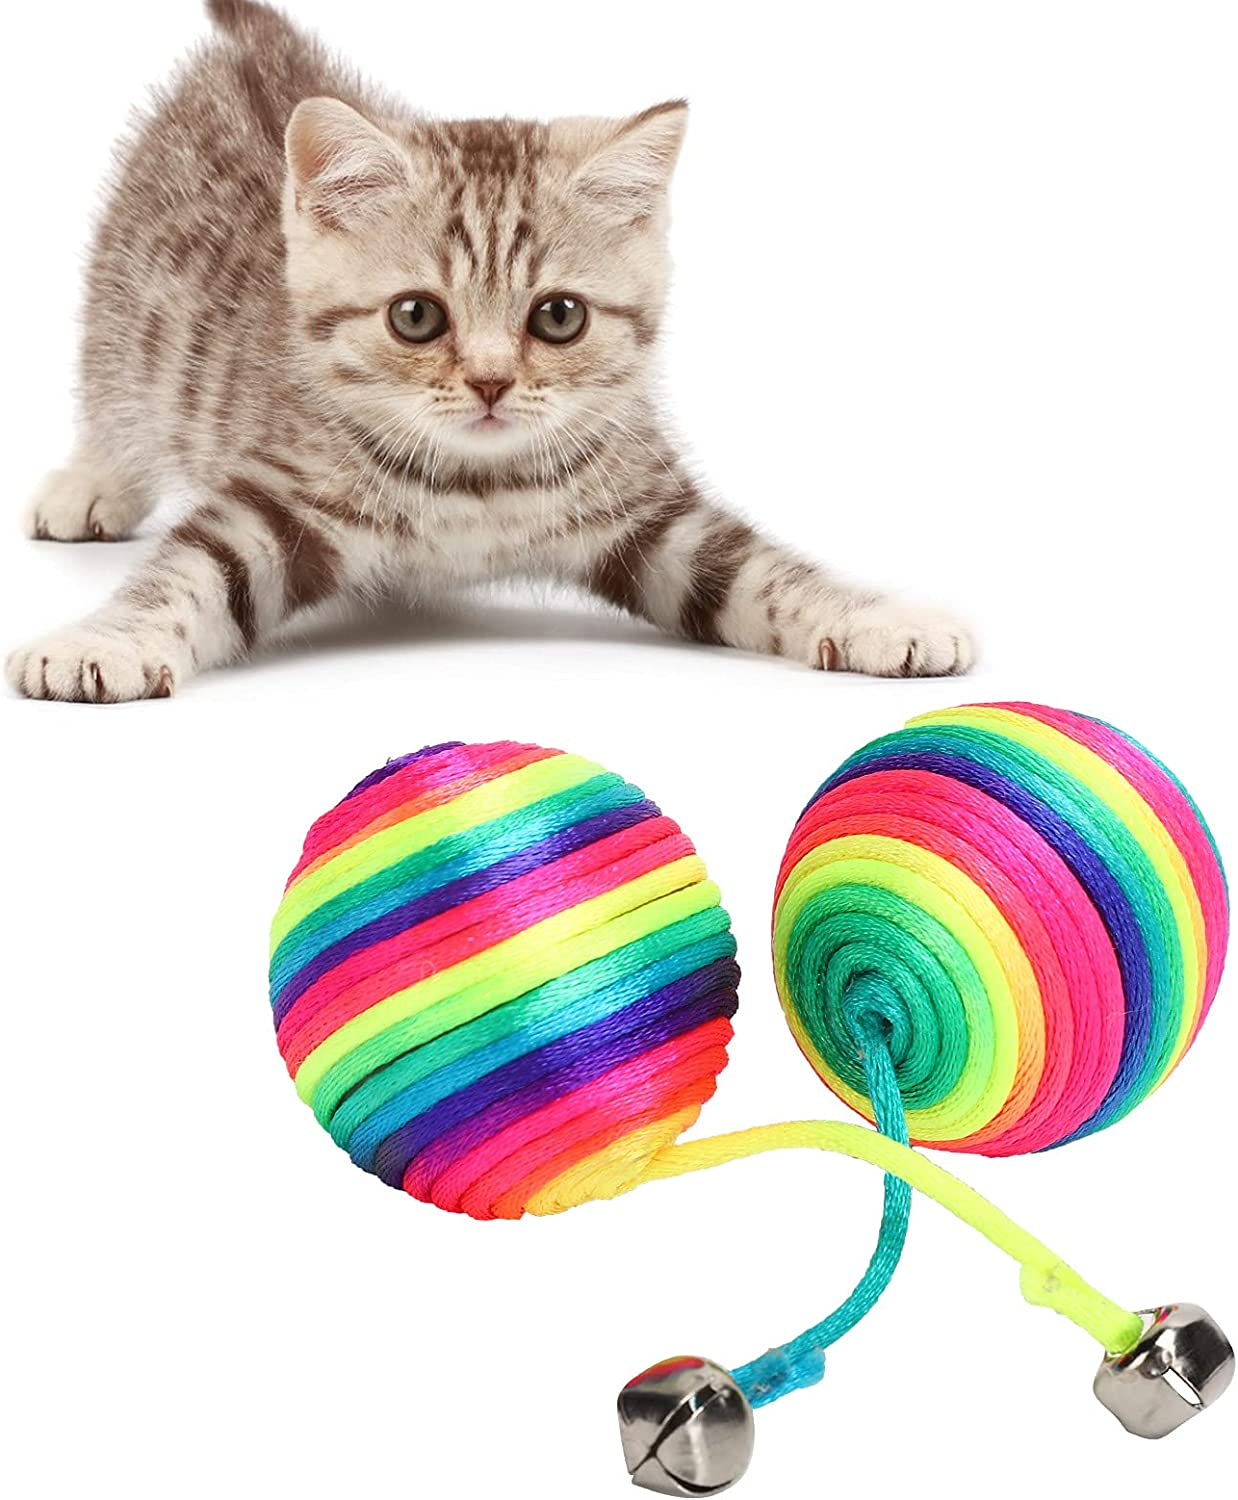 Bell Ball Toy for Max 49% OFF Pet and Colo Sale SALE% OFF Non‑Toxic Safe Design